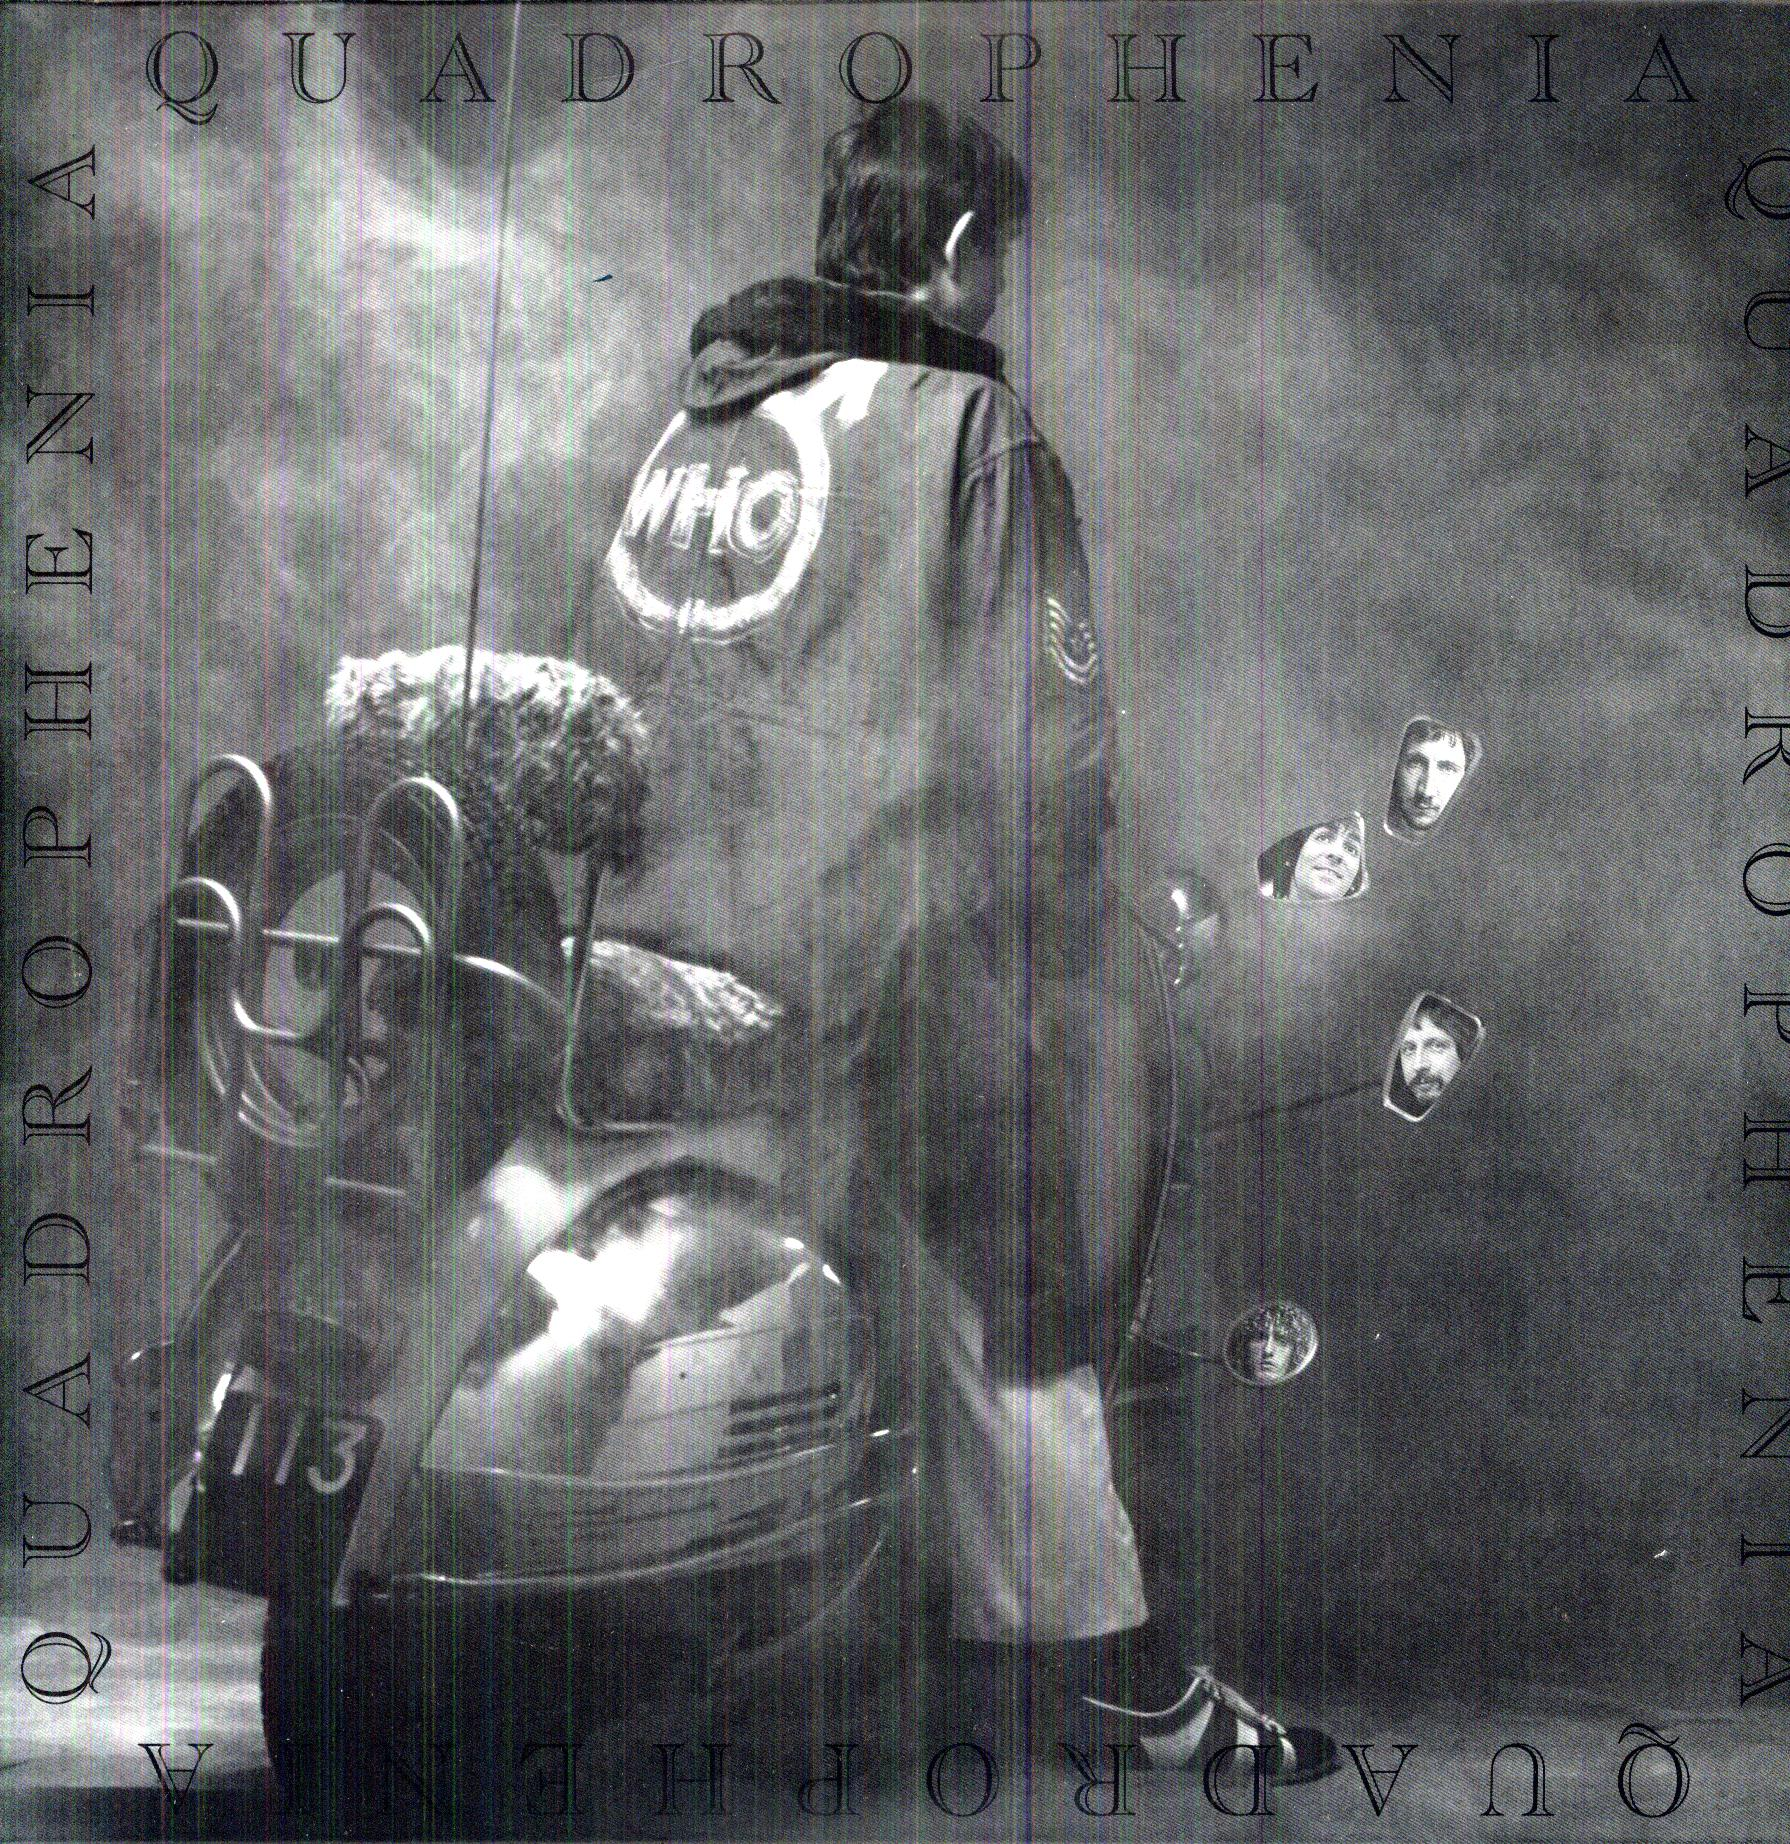 The-Who-Quadrophenia.jpg